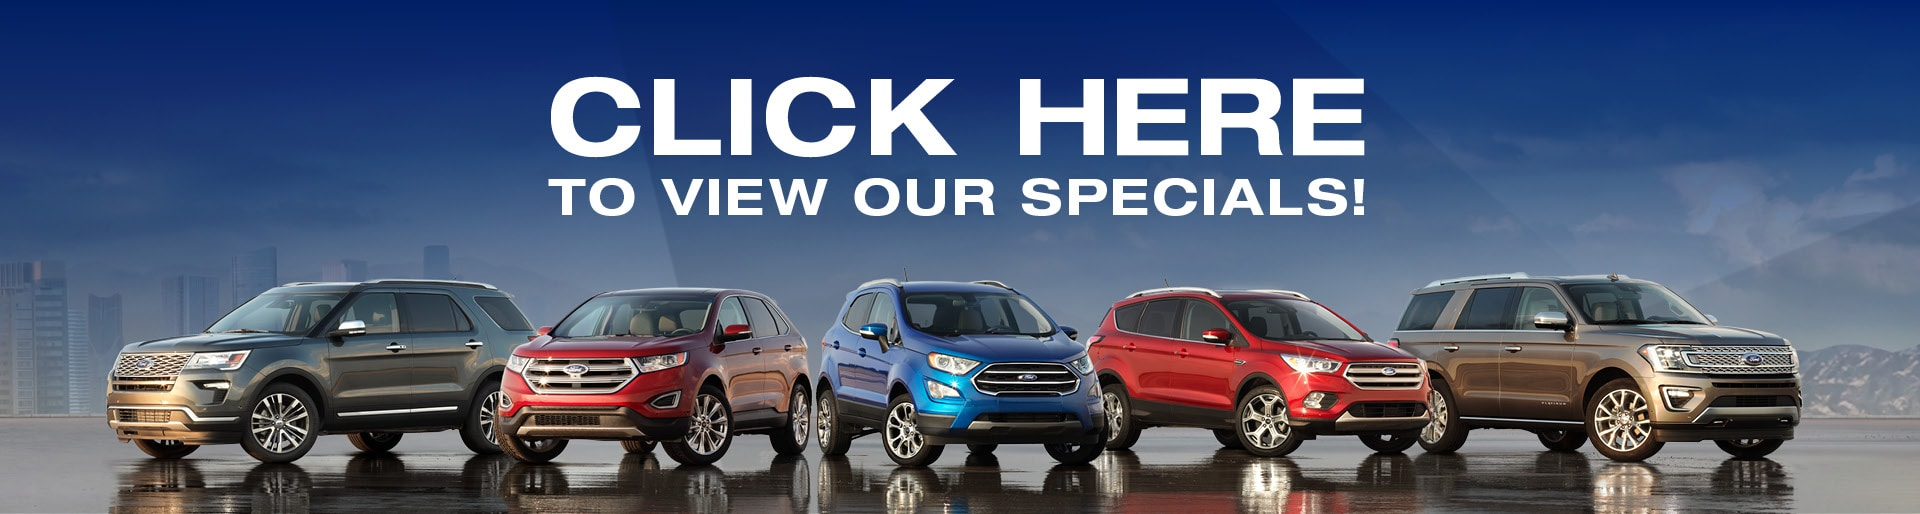 Ford Dealers Mn >> New Brighton Ford Ford Dealership In New Brighton Mn